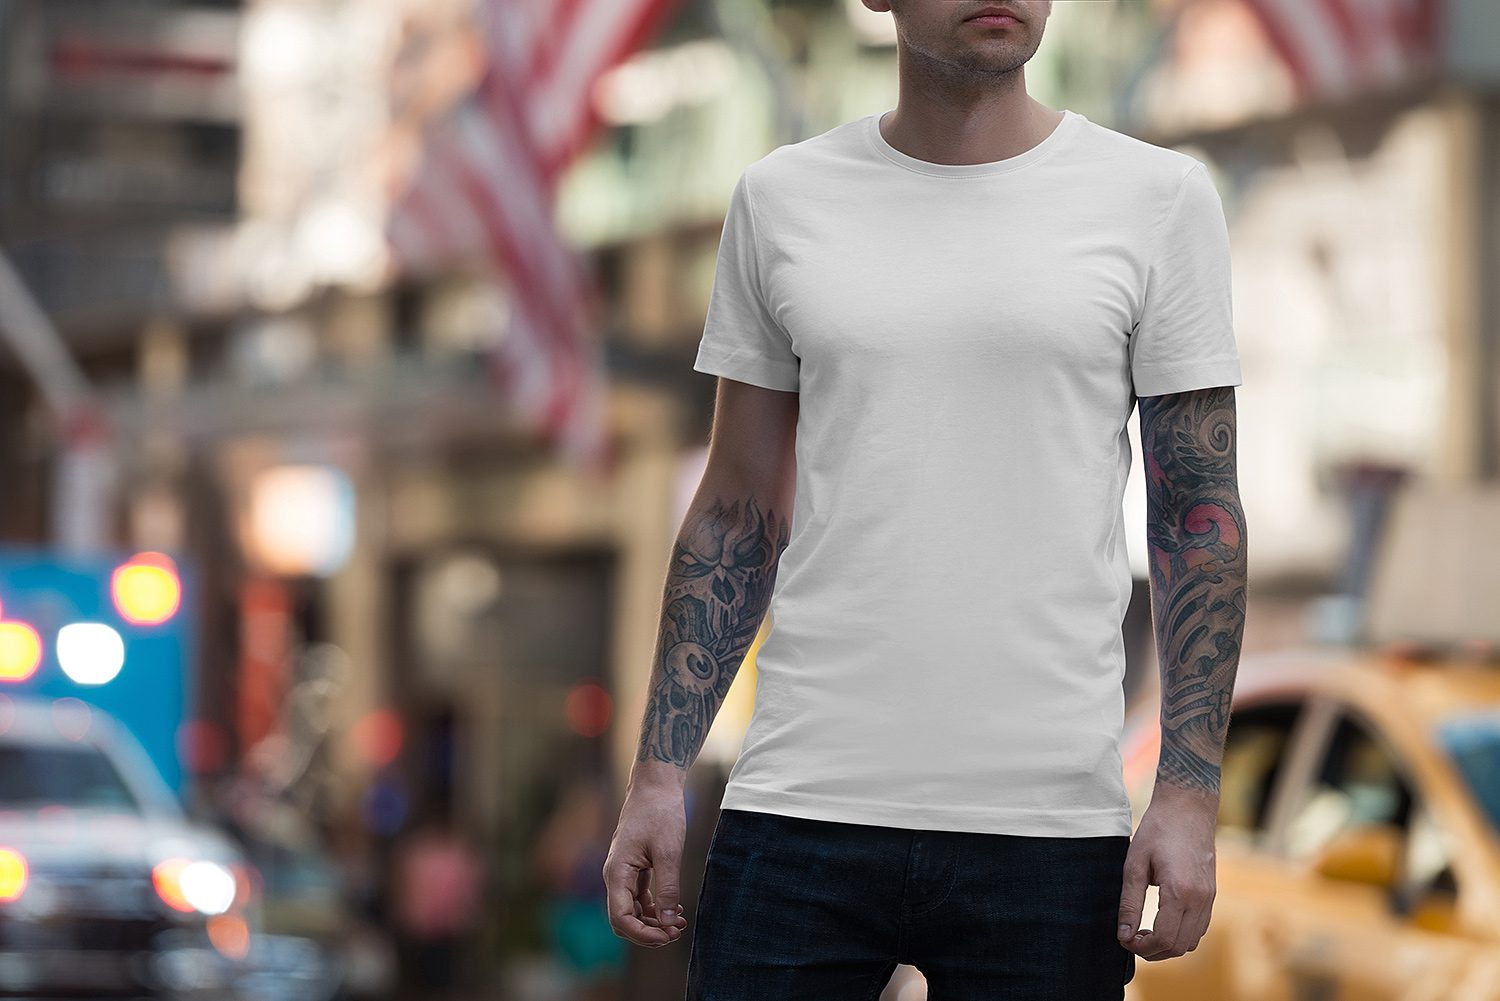 Male & Female T-Shirt Mockup